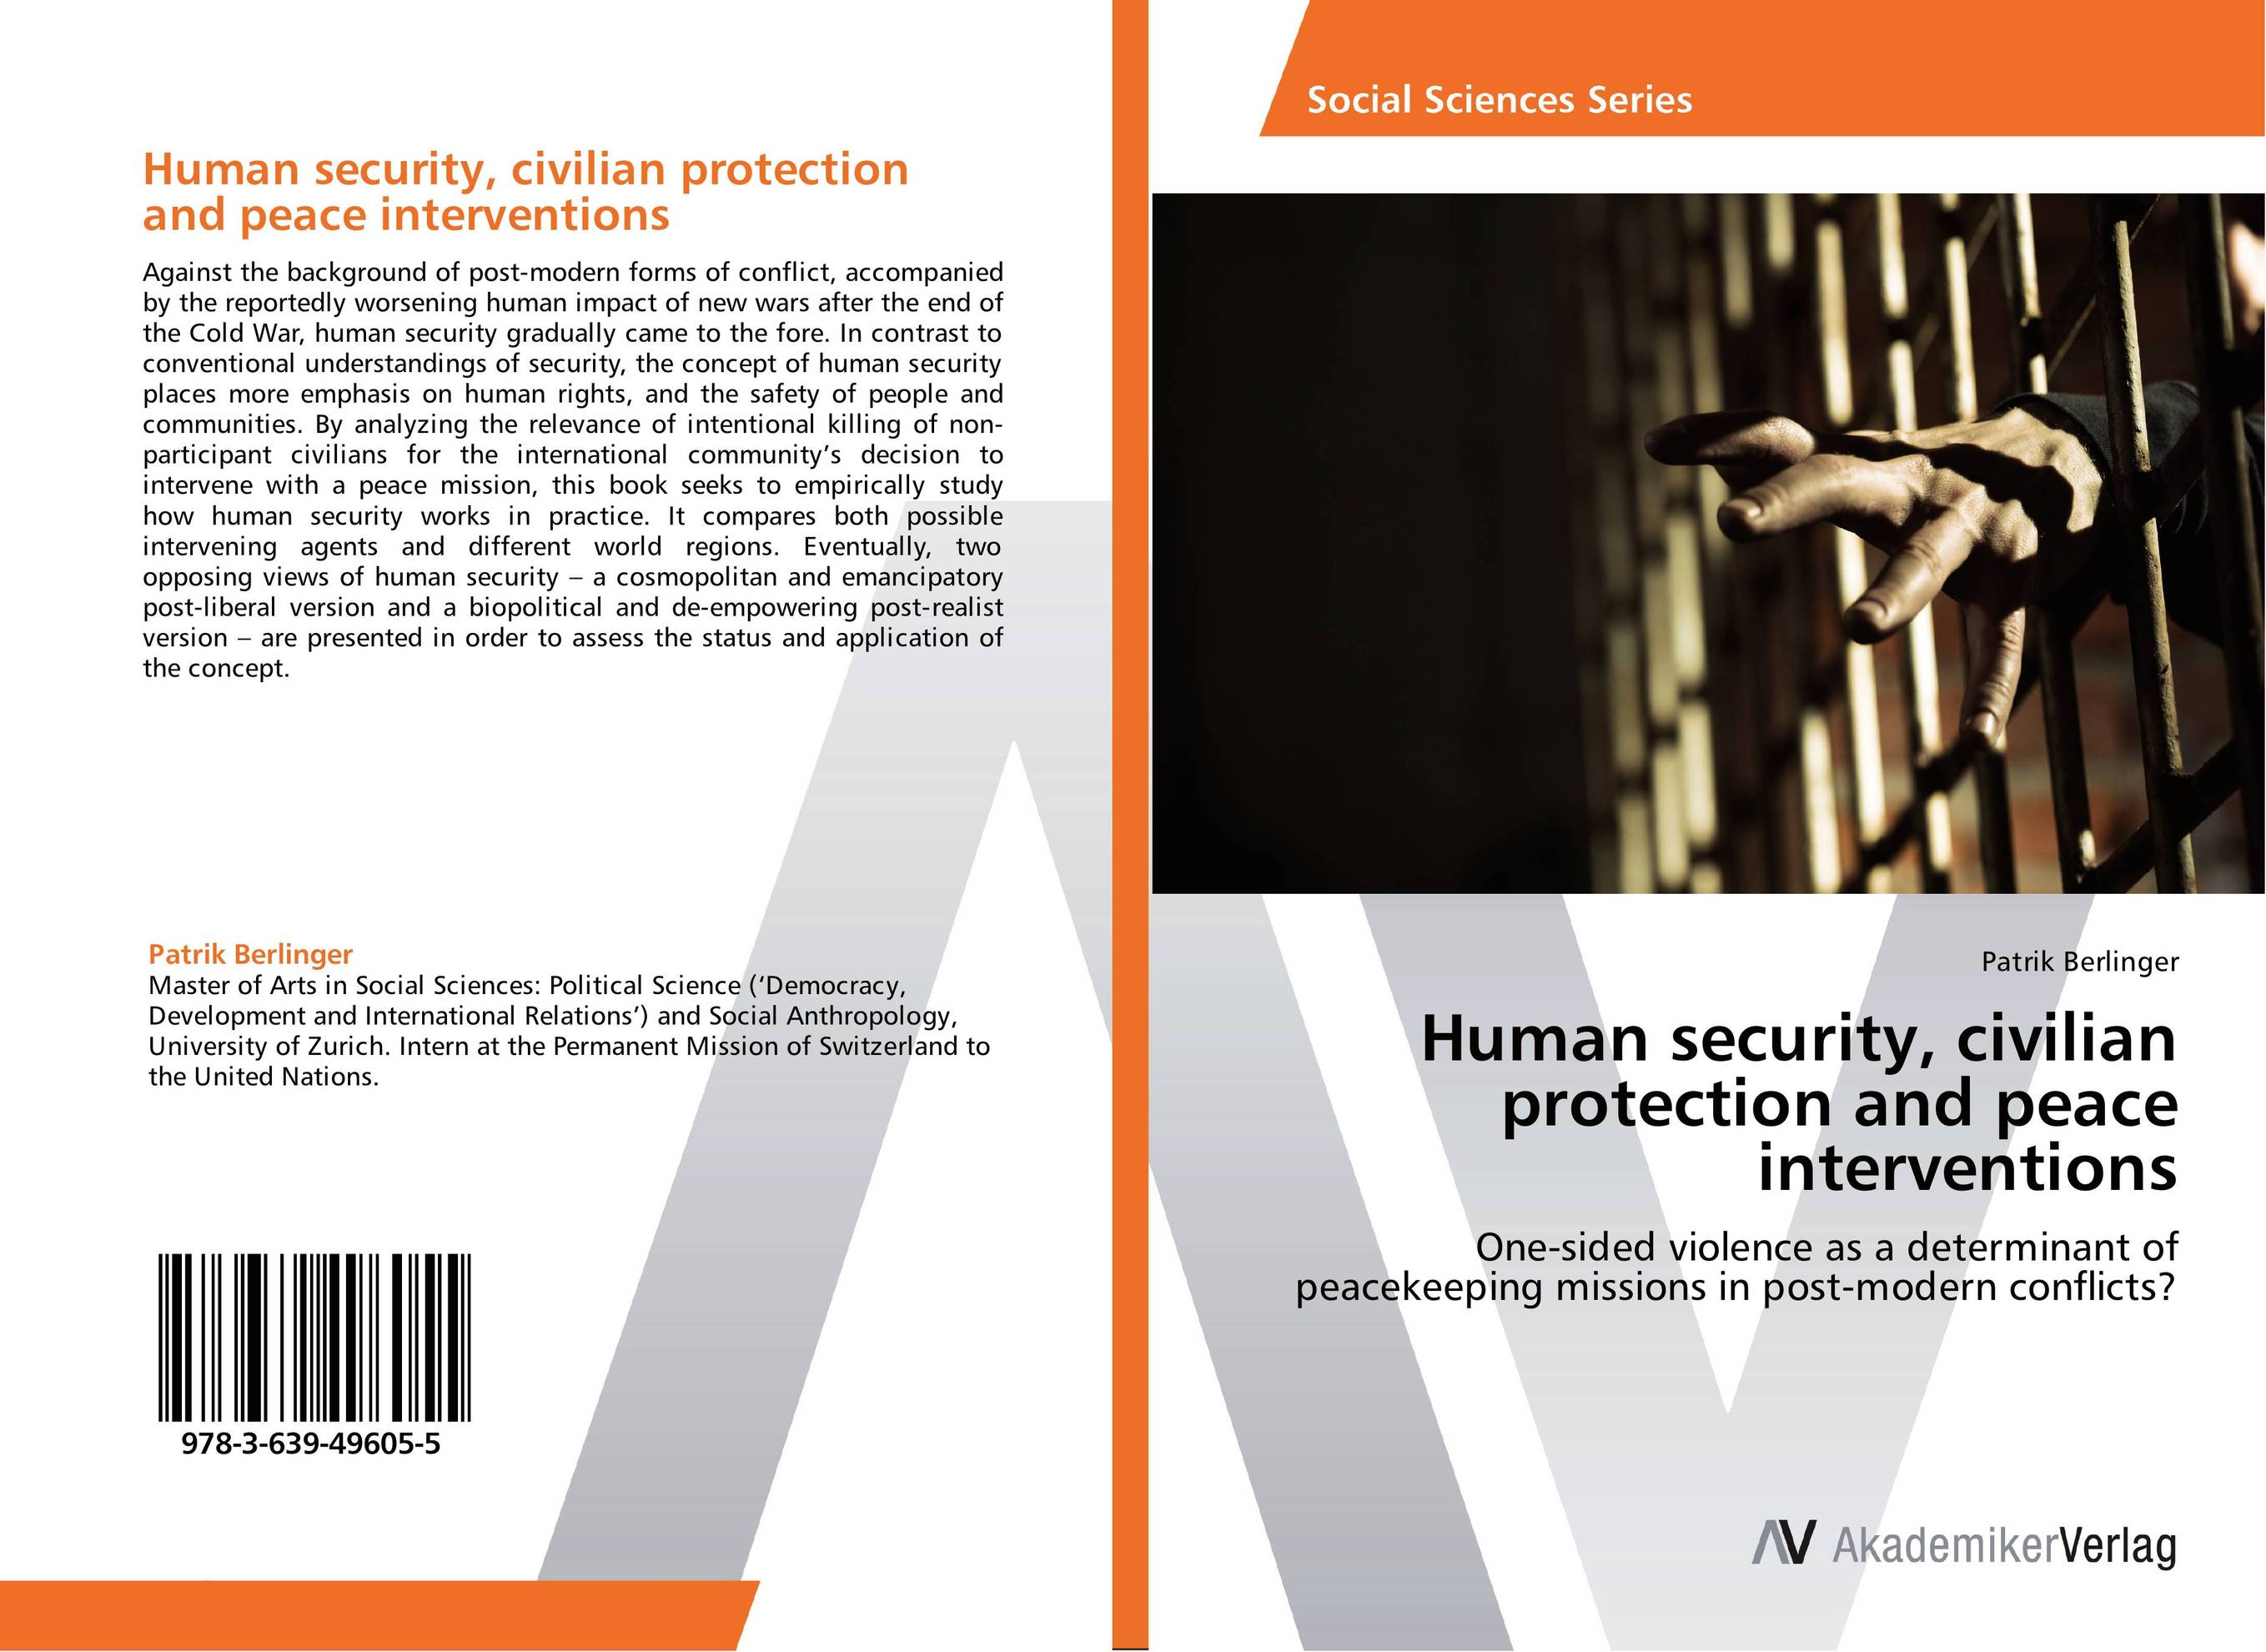 Human security, civilian protection and peace interventions fundamentals of physics extended 9th edition international student version with wileyplus set